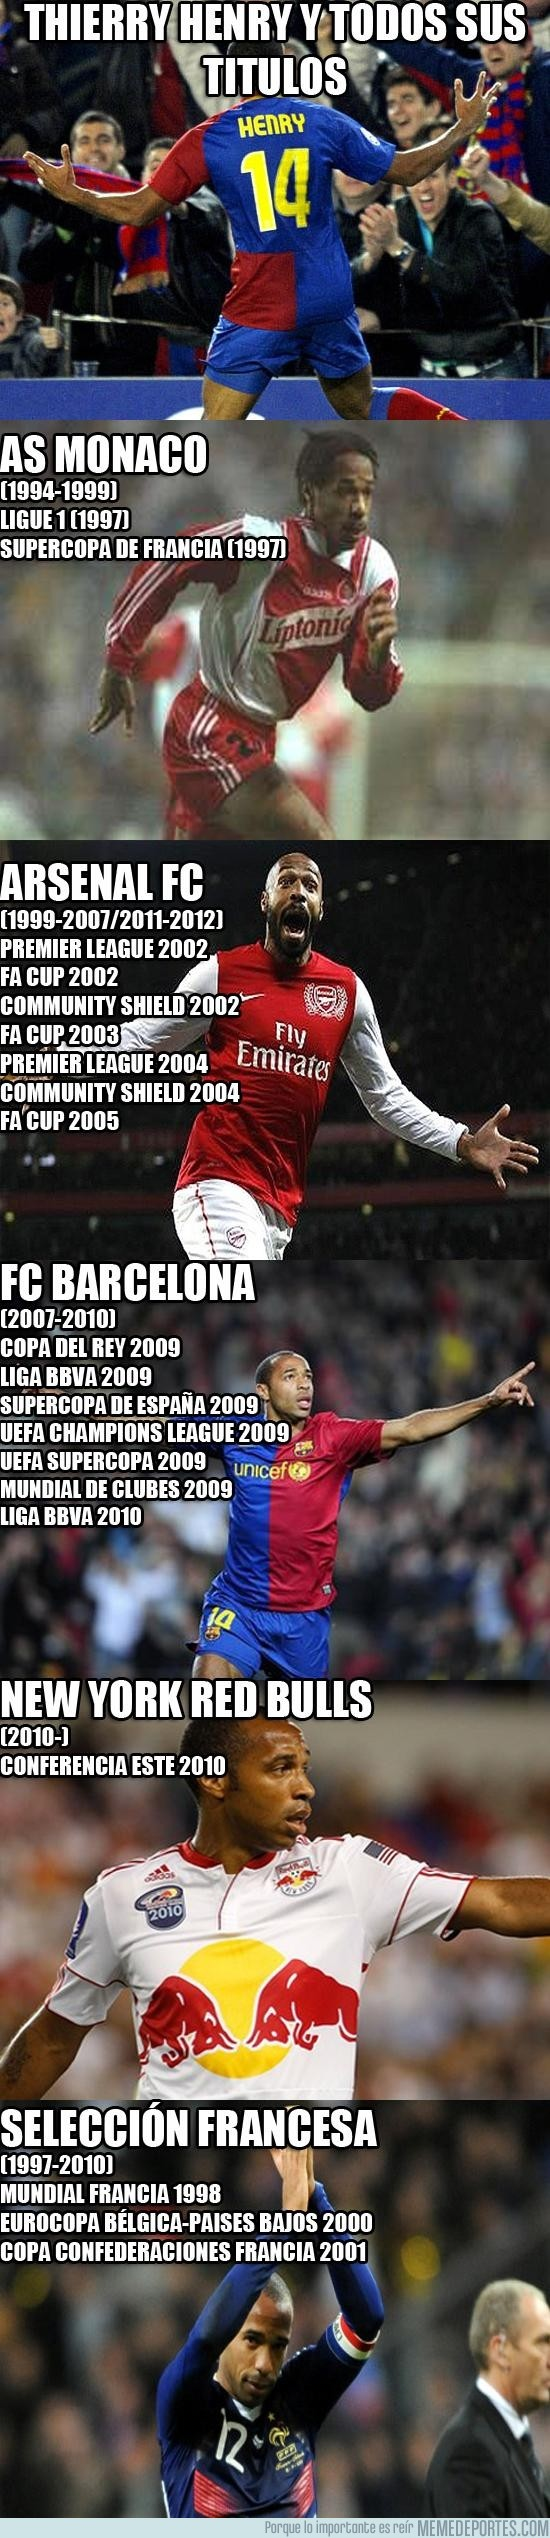 133773 - Simplemente Henry ¡CRACK!